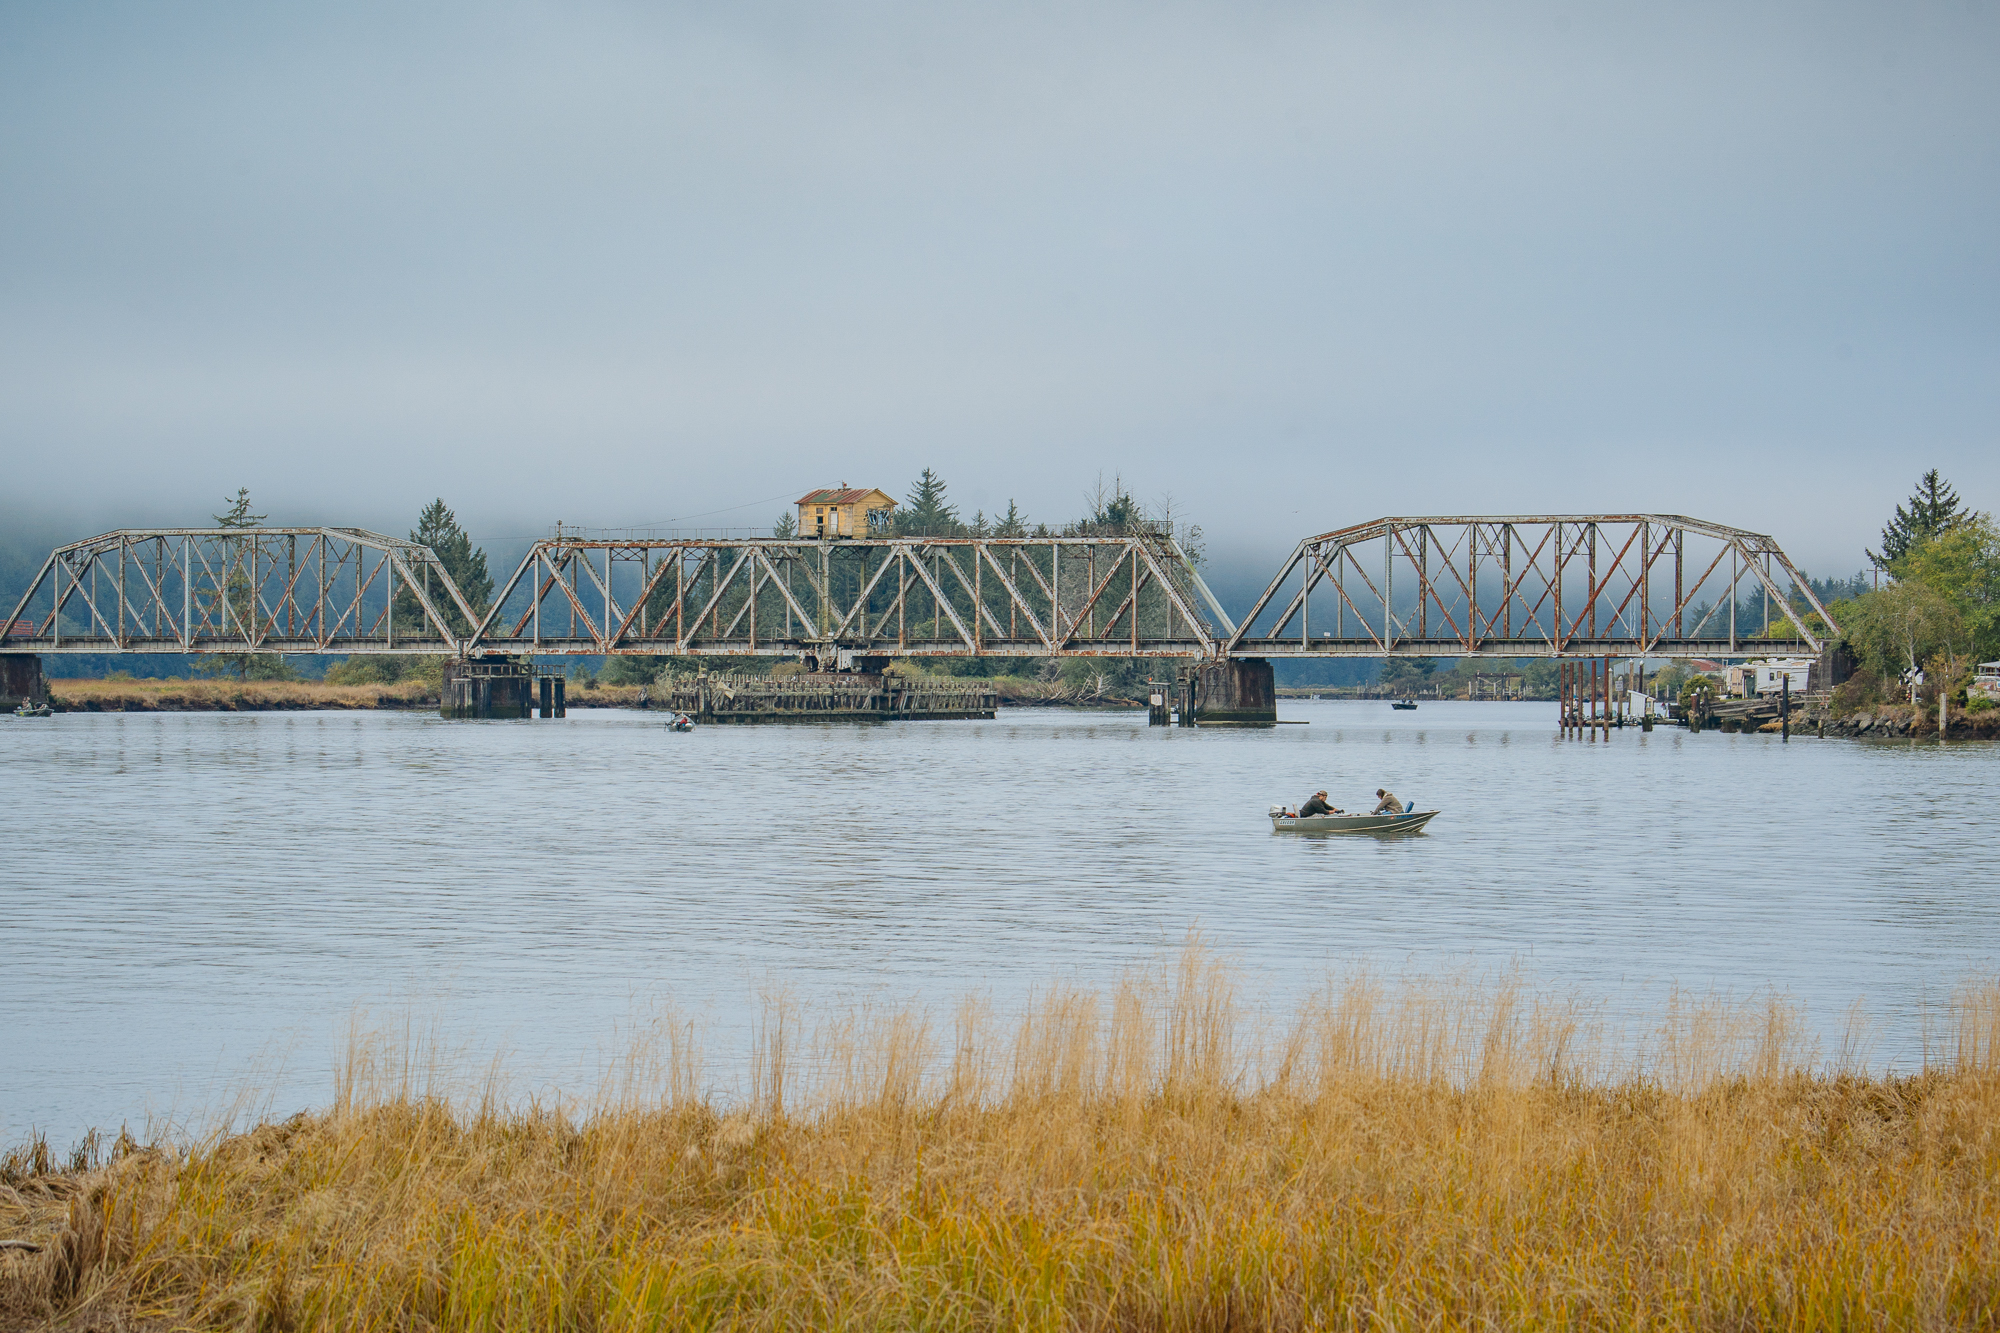 Stories of Restoring the Siuslaw